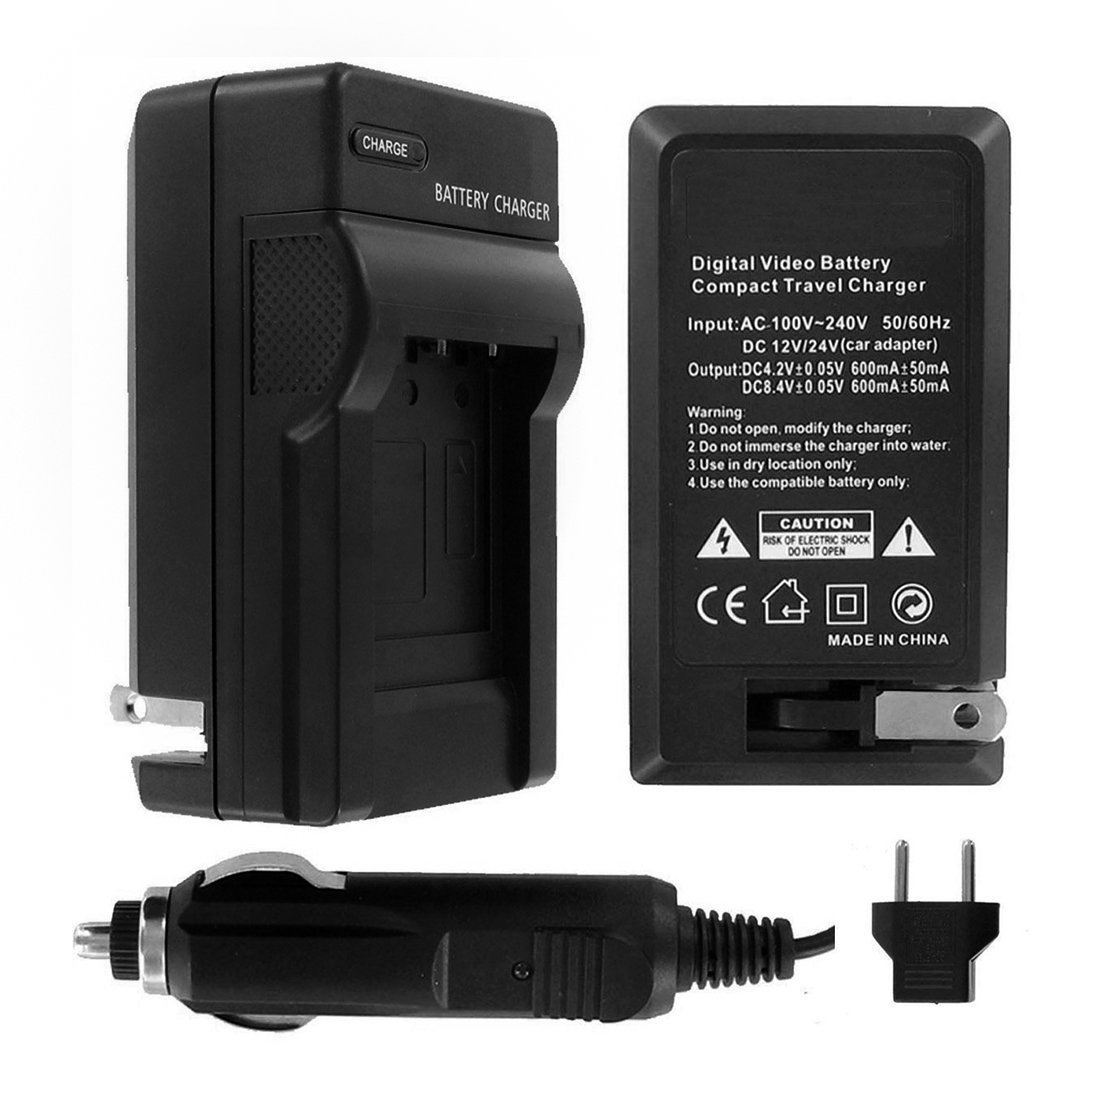 Ultrapro Nikon D3100 Digital Camera Battery Charger Power Connector Cover From 110 220v With Car Eu Adapters Replacement For Mh 24